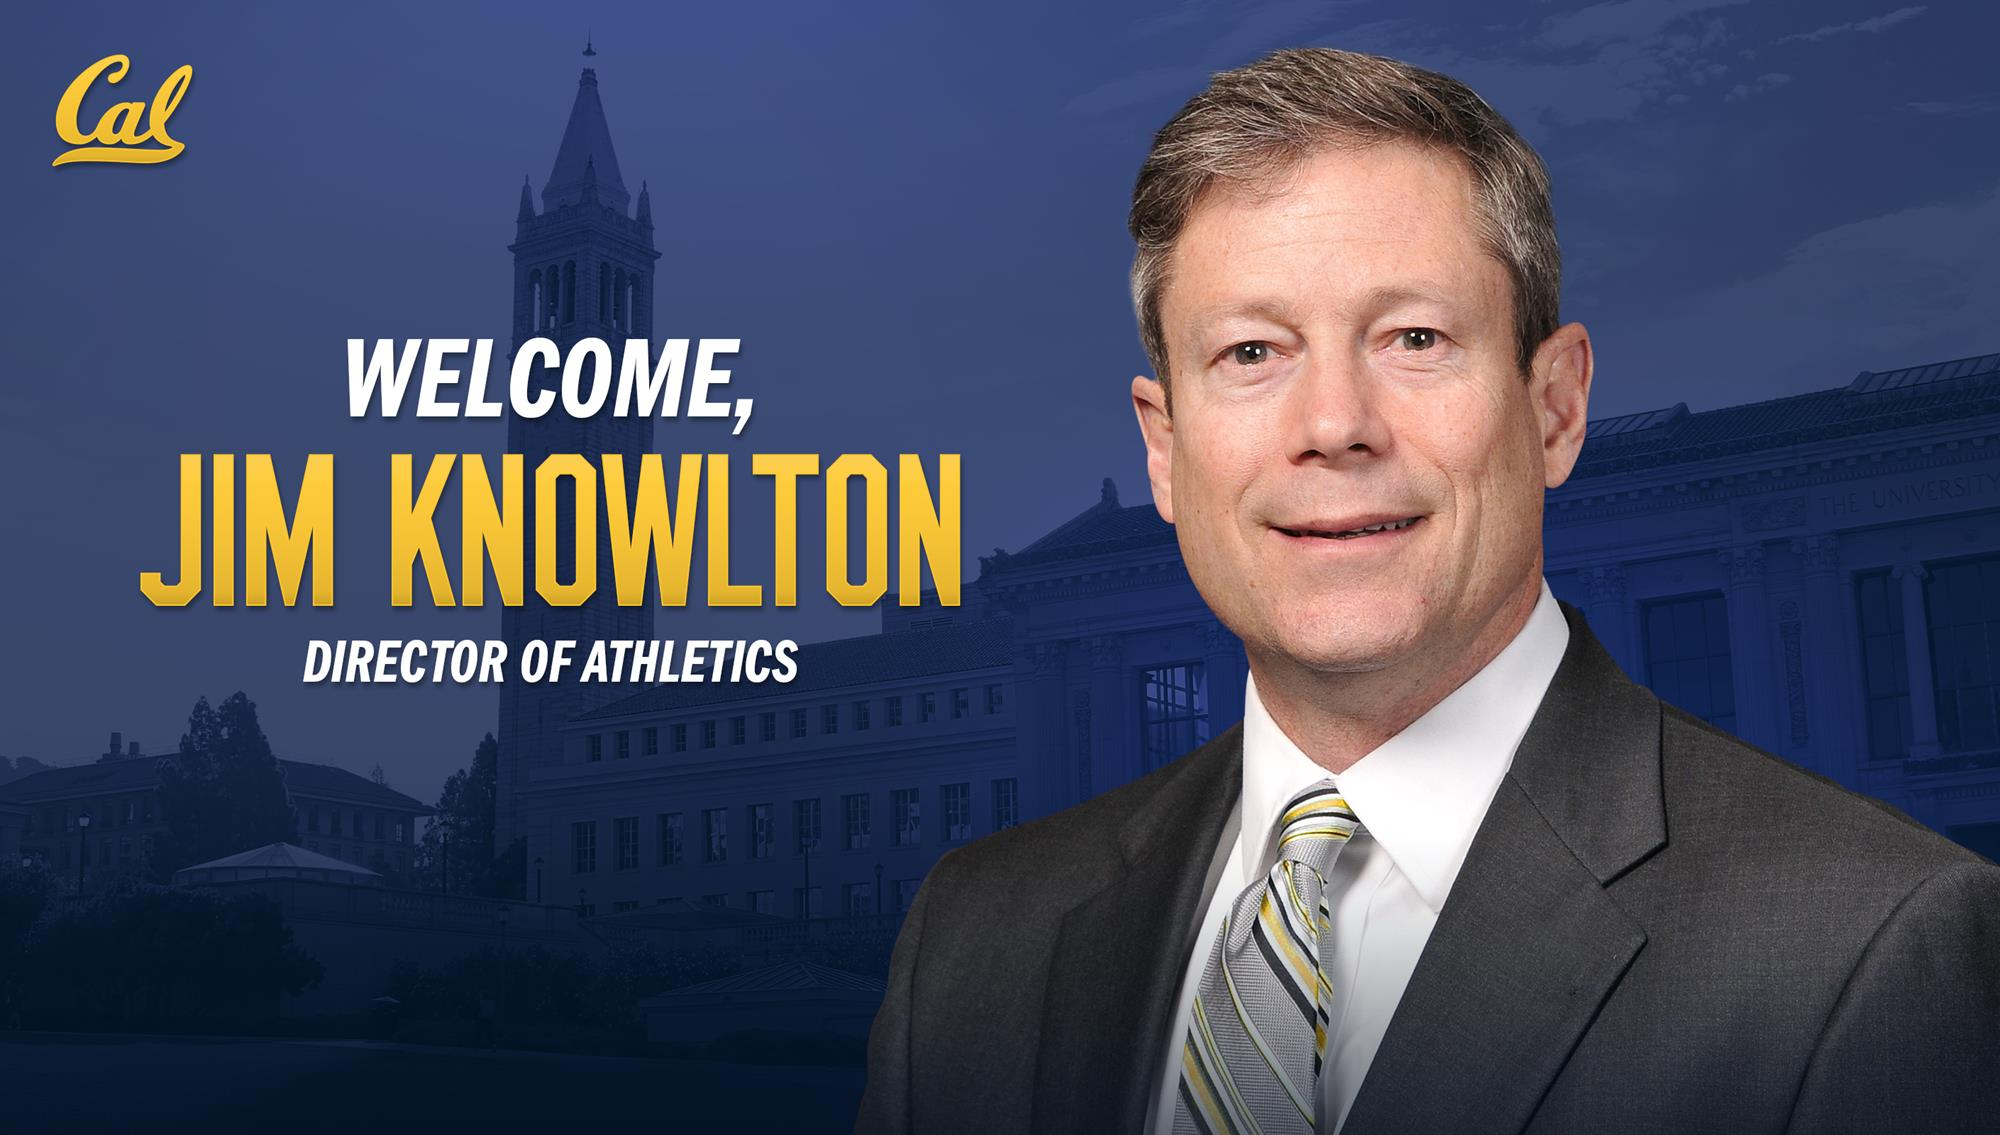 Jim Knowlton Named Director of Athletics